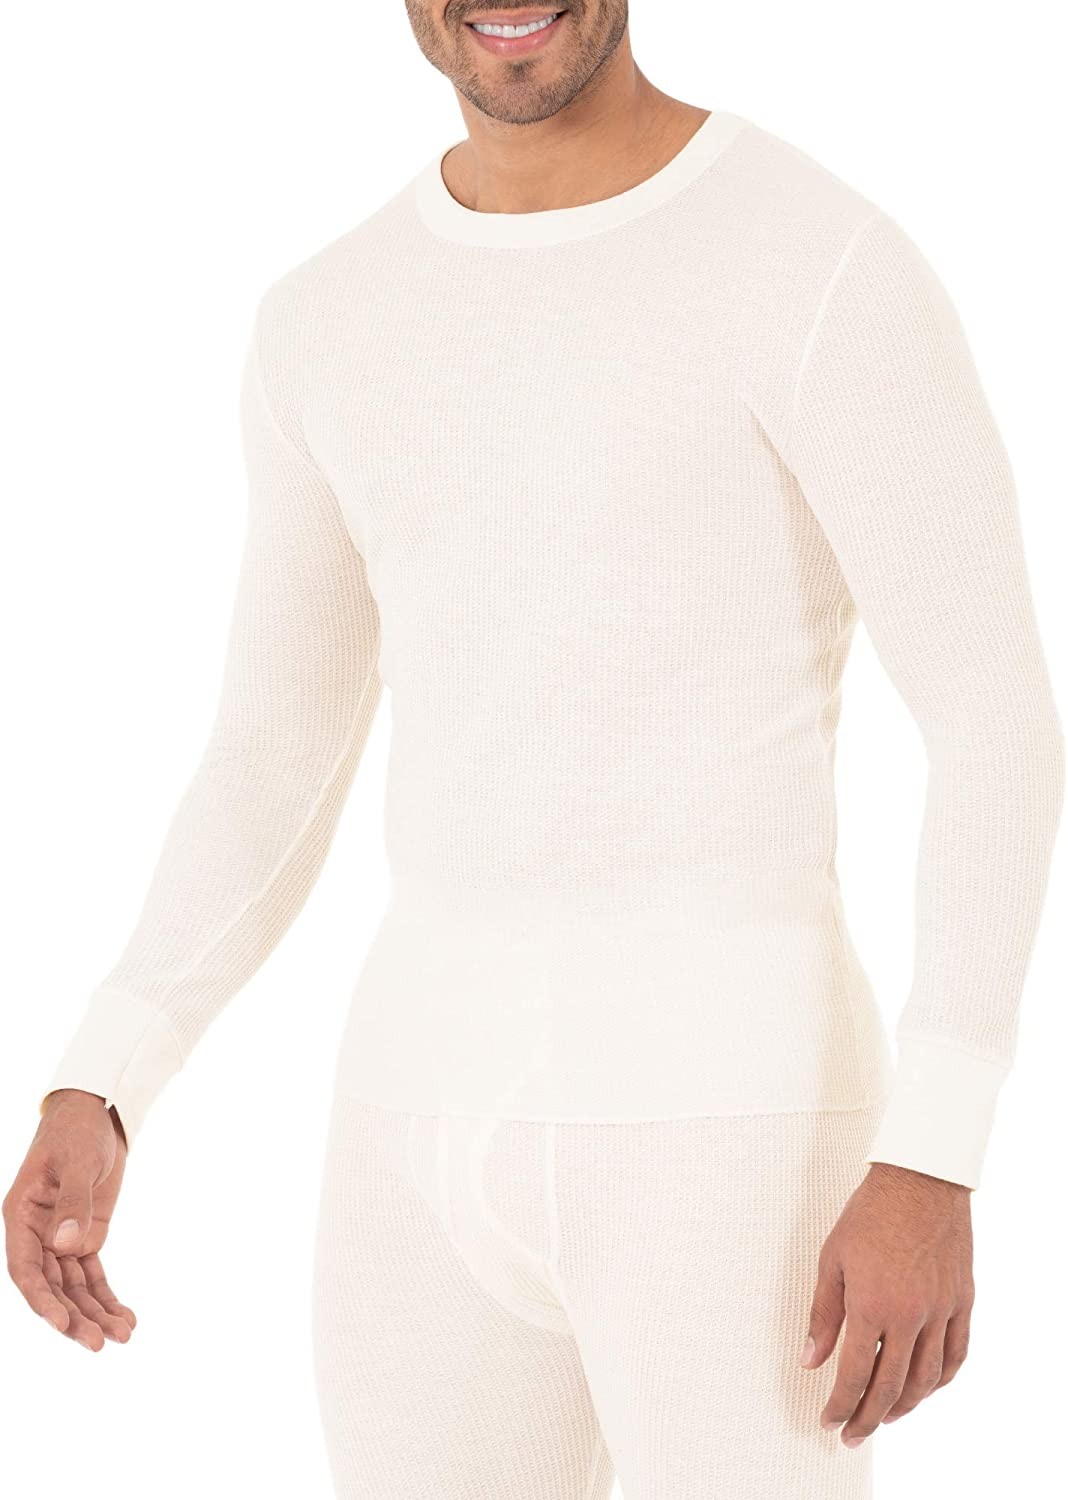 Fruit of the Loom Classic Midweight Waffle Thermal Top sous-v/êtement Haut Thermique Homme